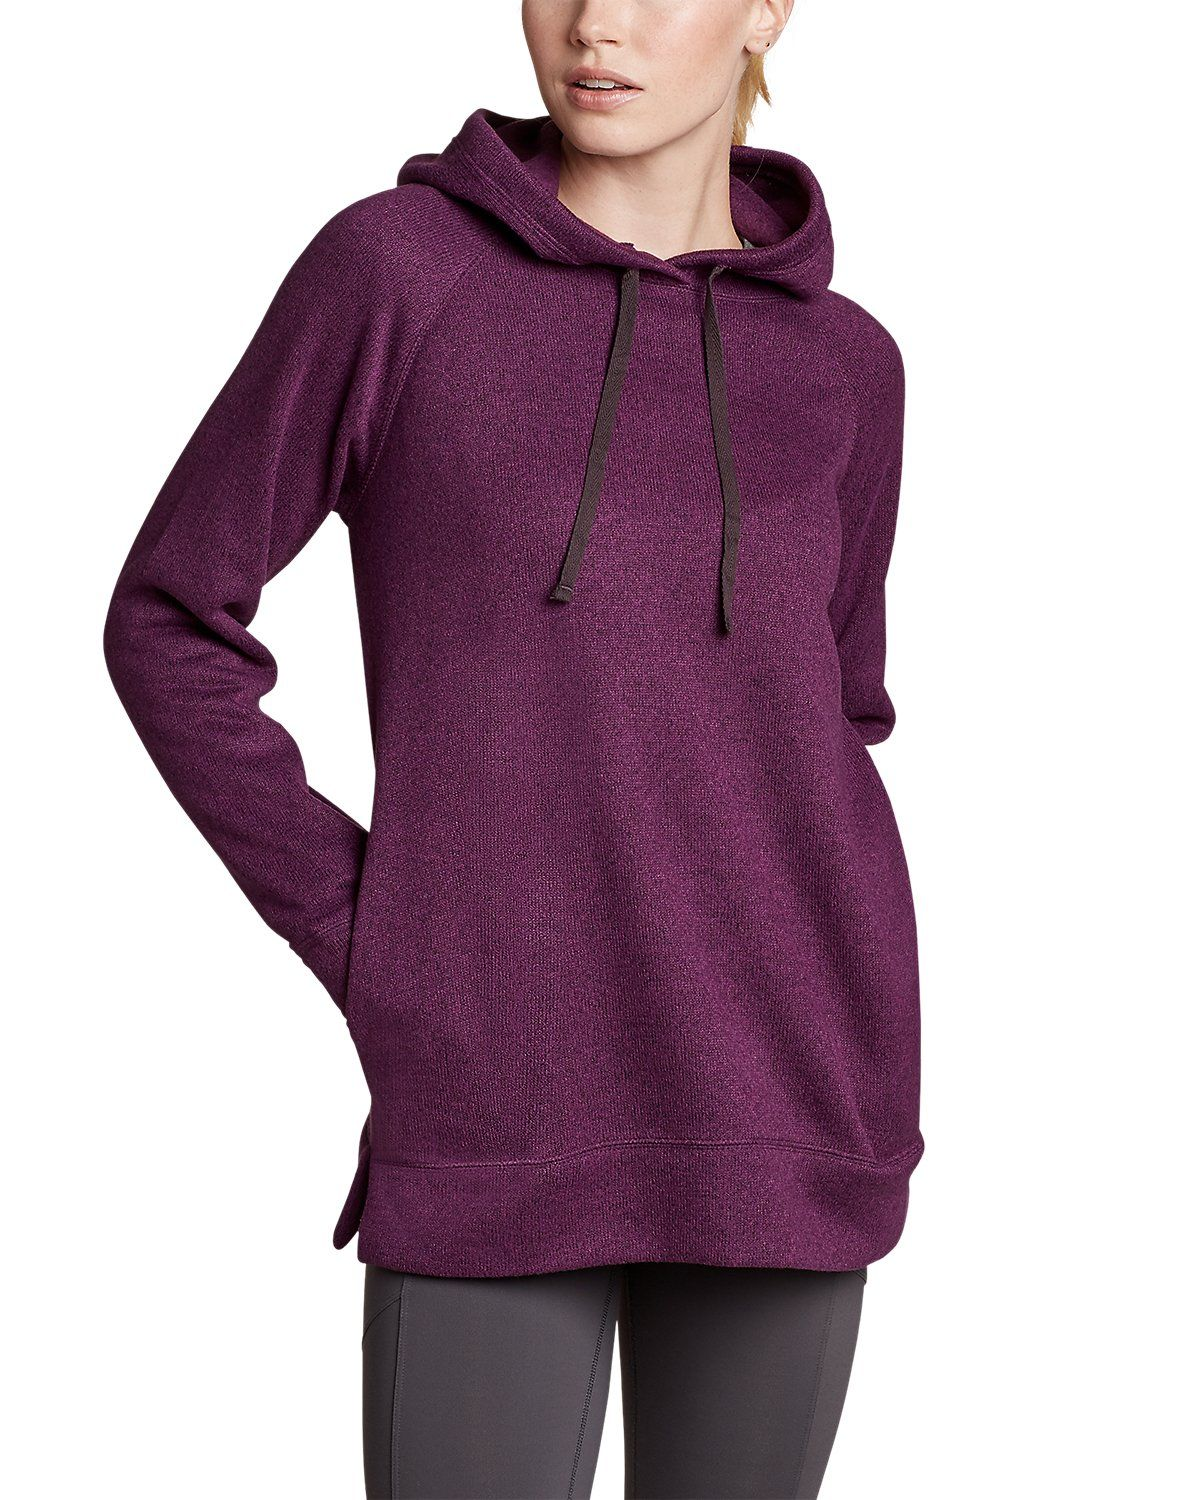 Photo of Women's Radiator Fleece Sweatshirt Hoodie